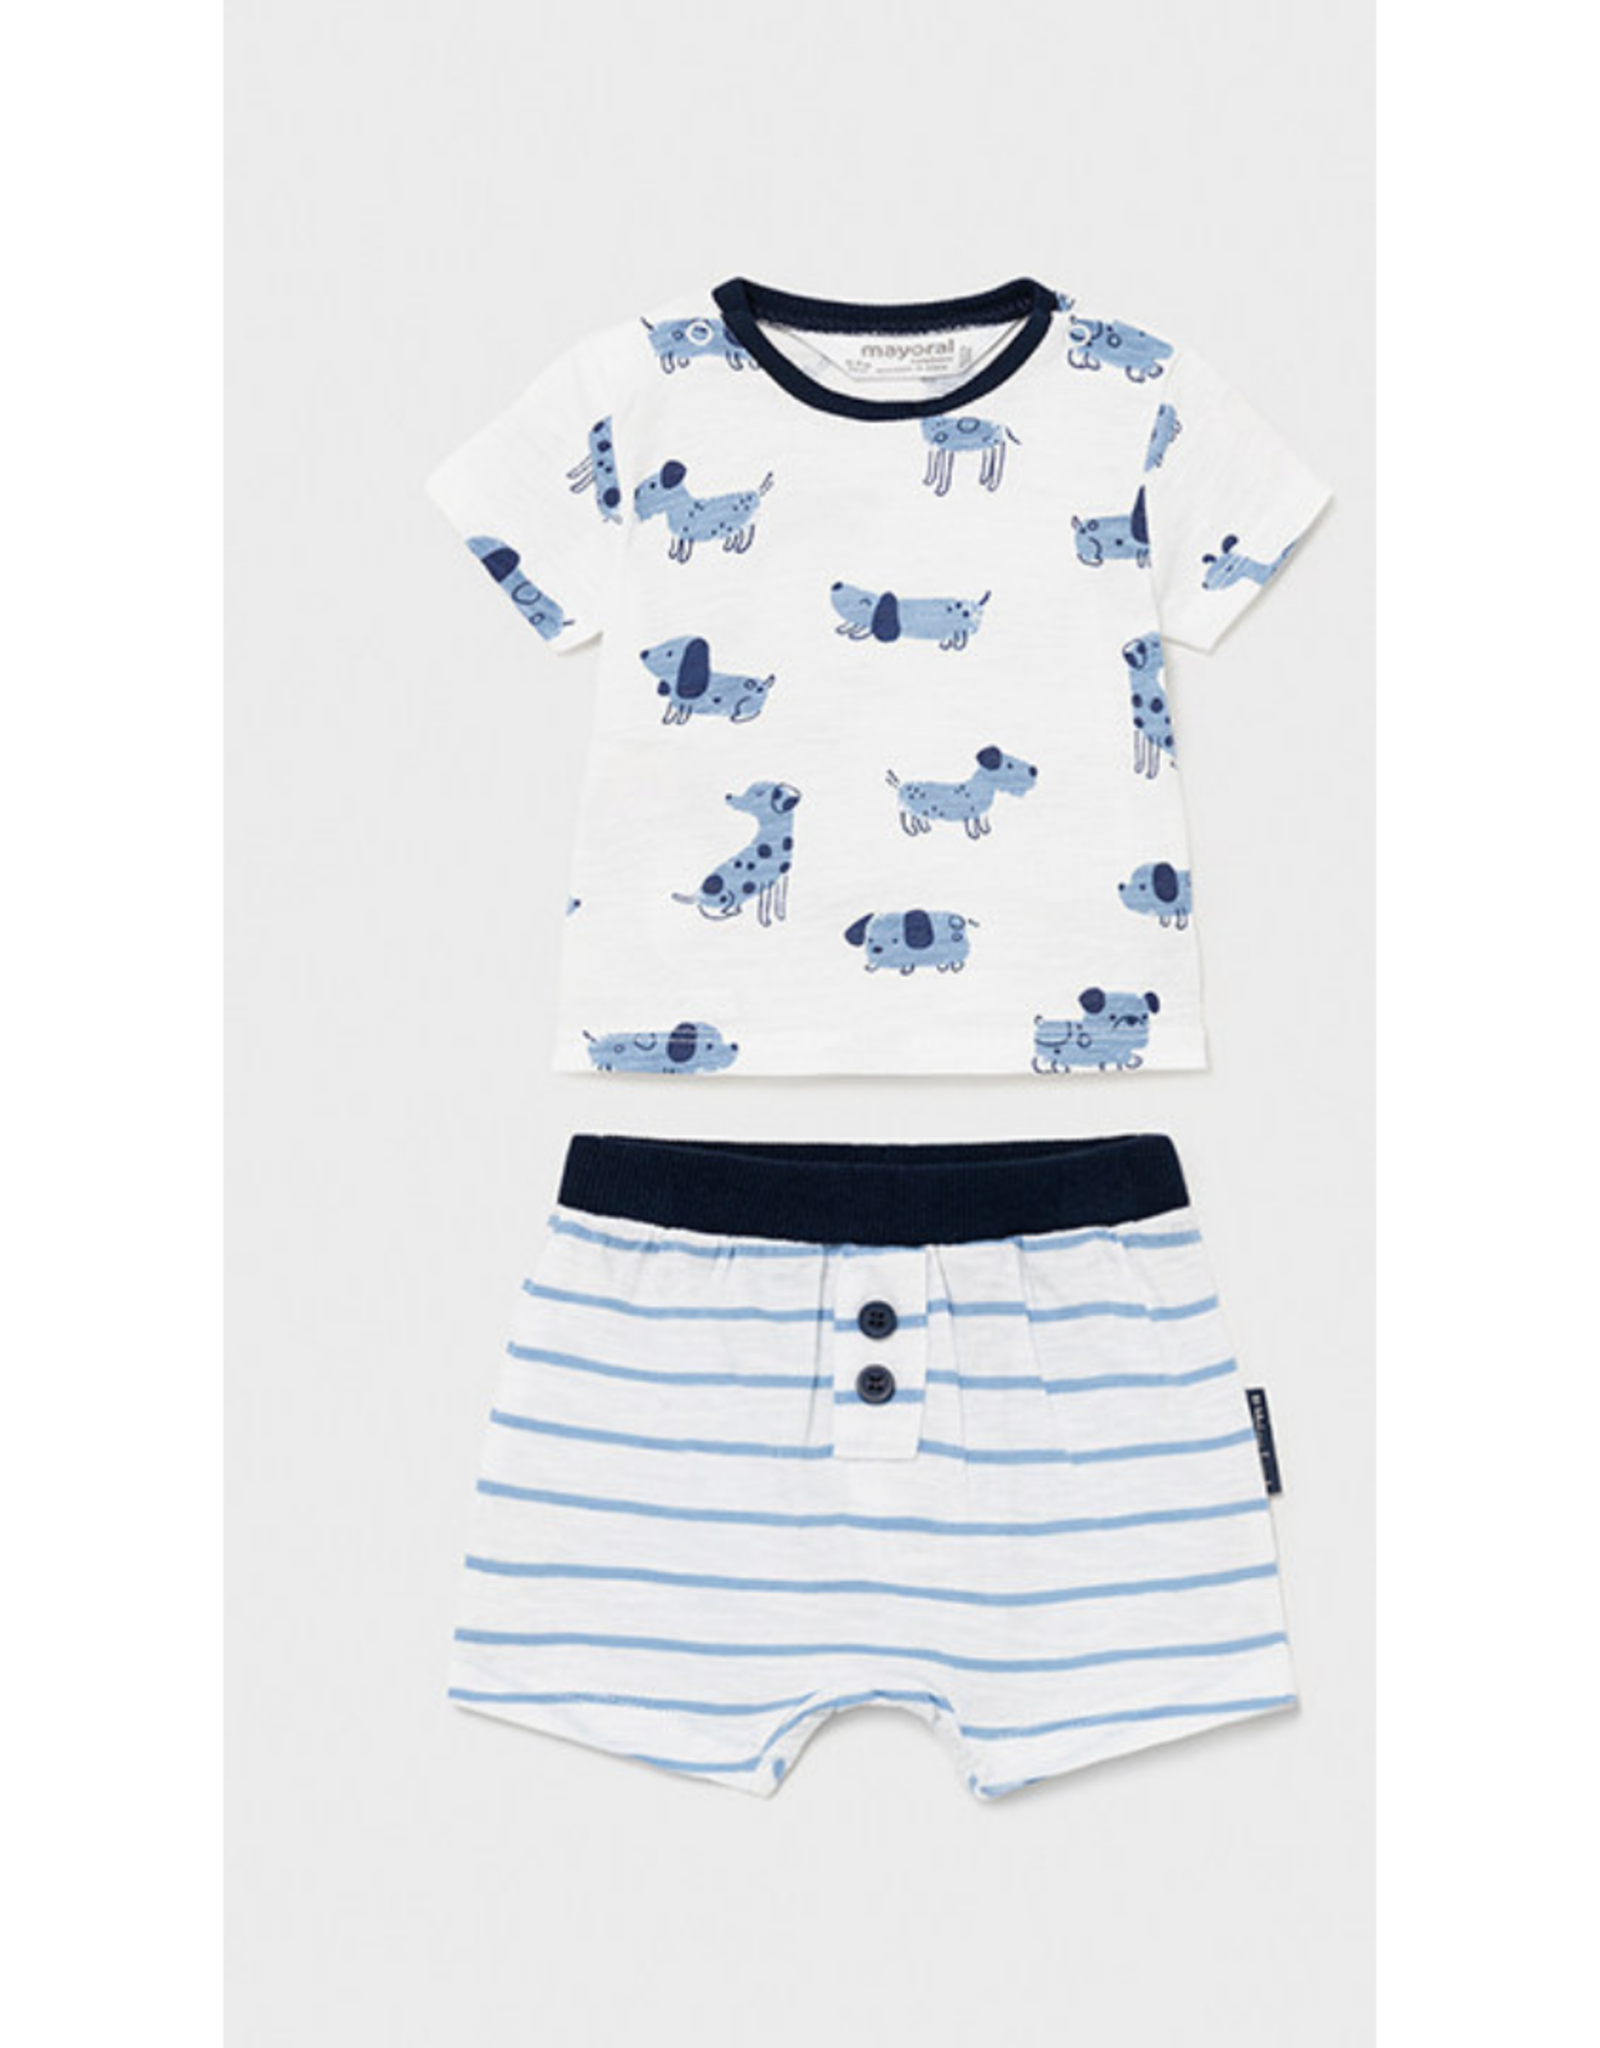 Mayoral Shirt & Shorts Set, Dogs Print Blue